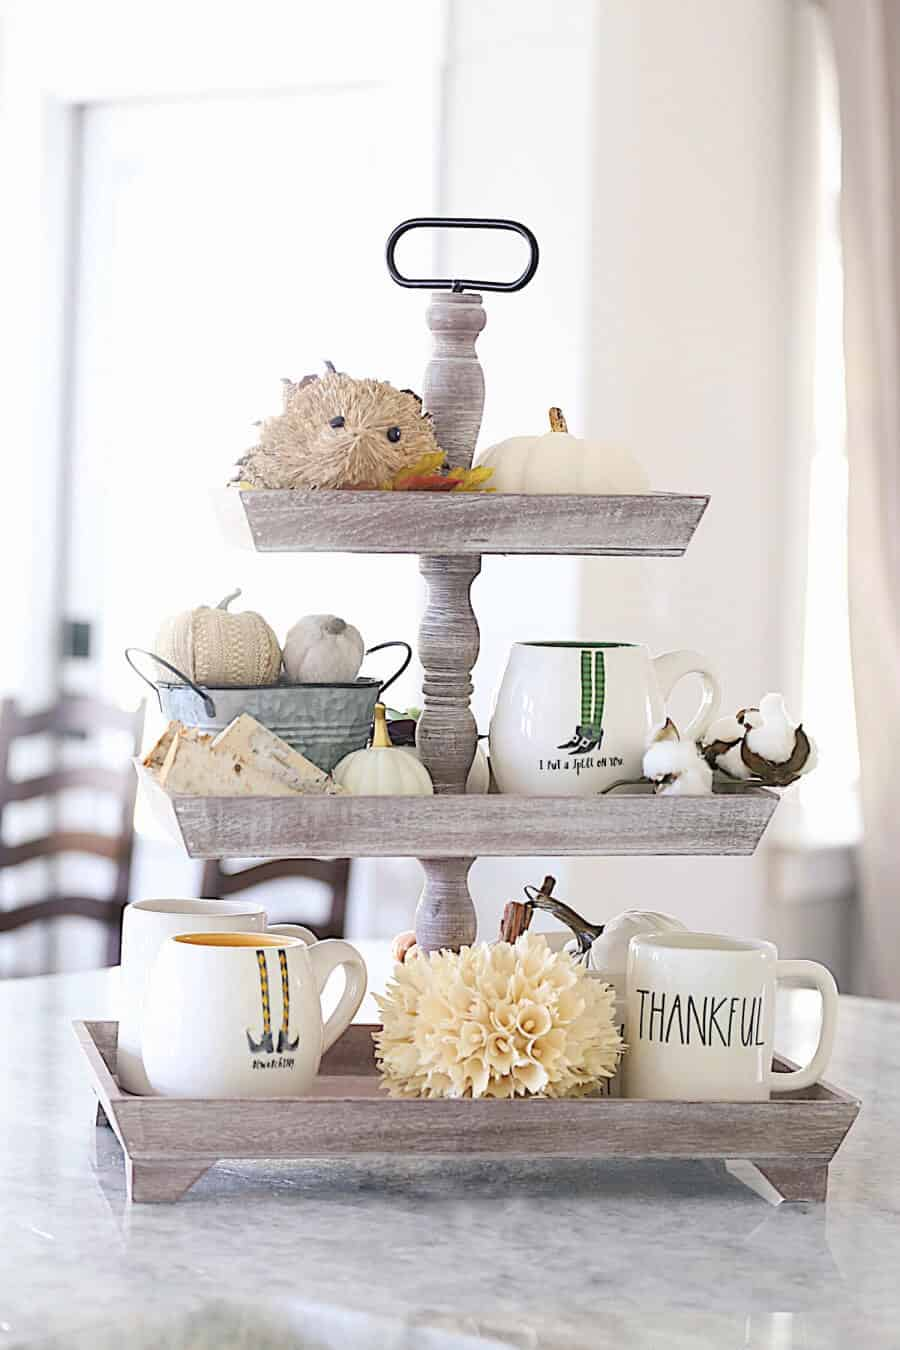 A 3 tier tray with Rae Dunn Mugs and cotton and fall decor